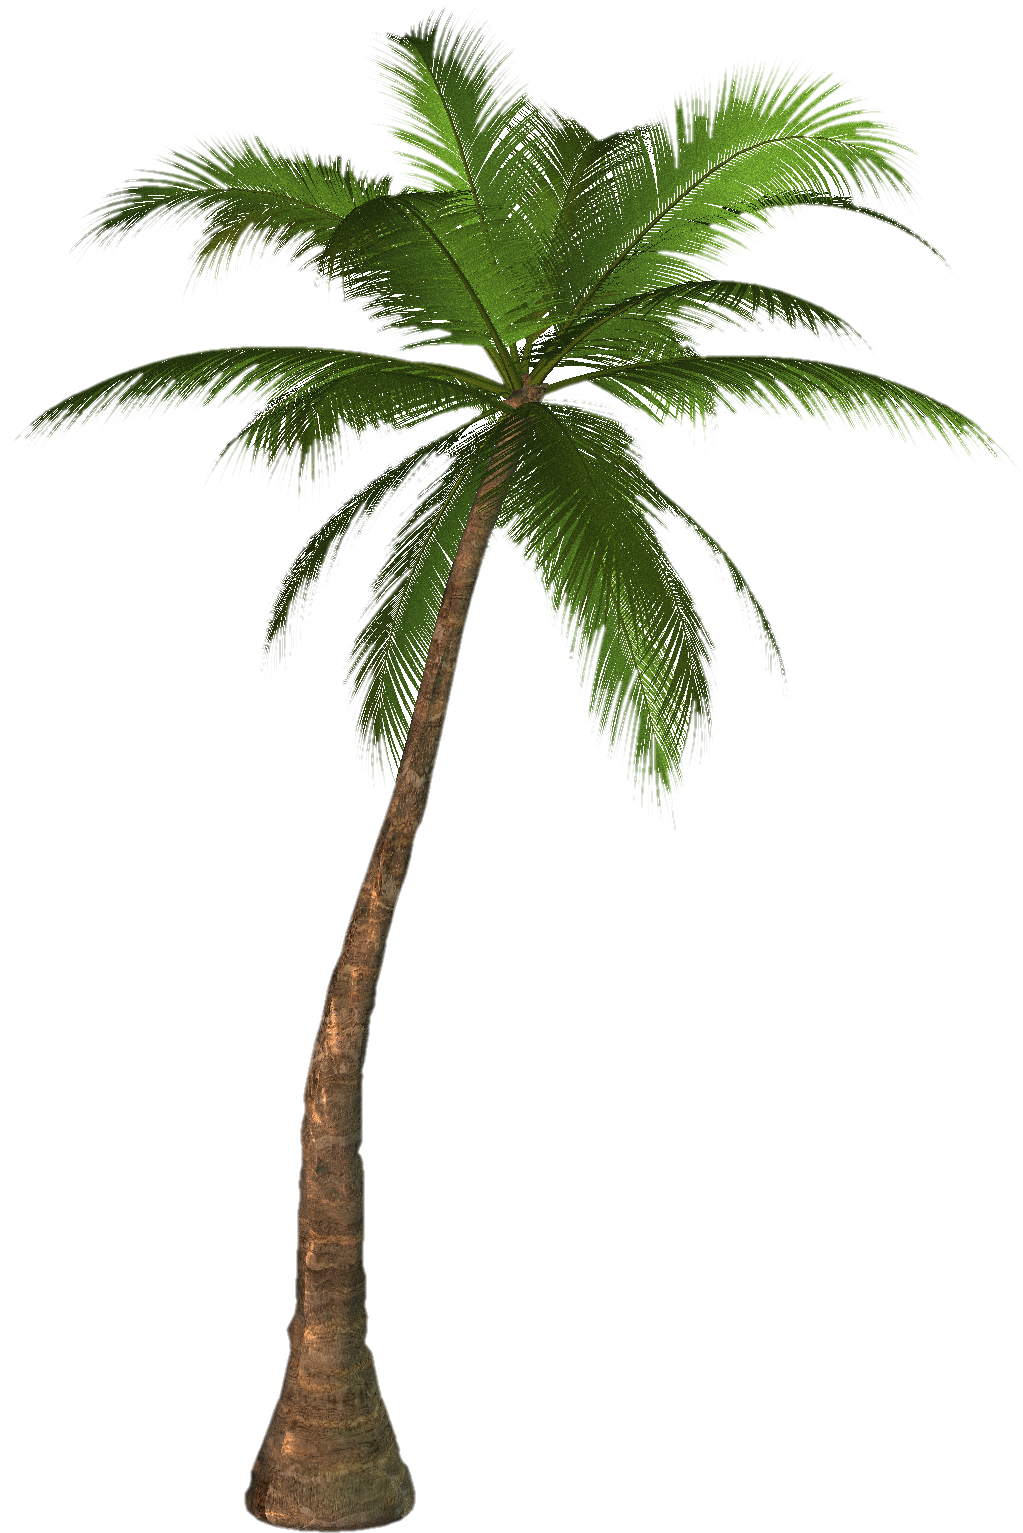 Hd Coconut Tree Png Transparent Background